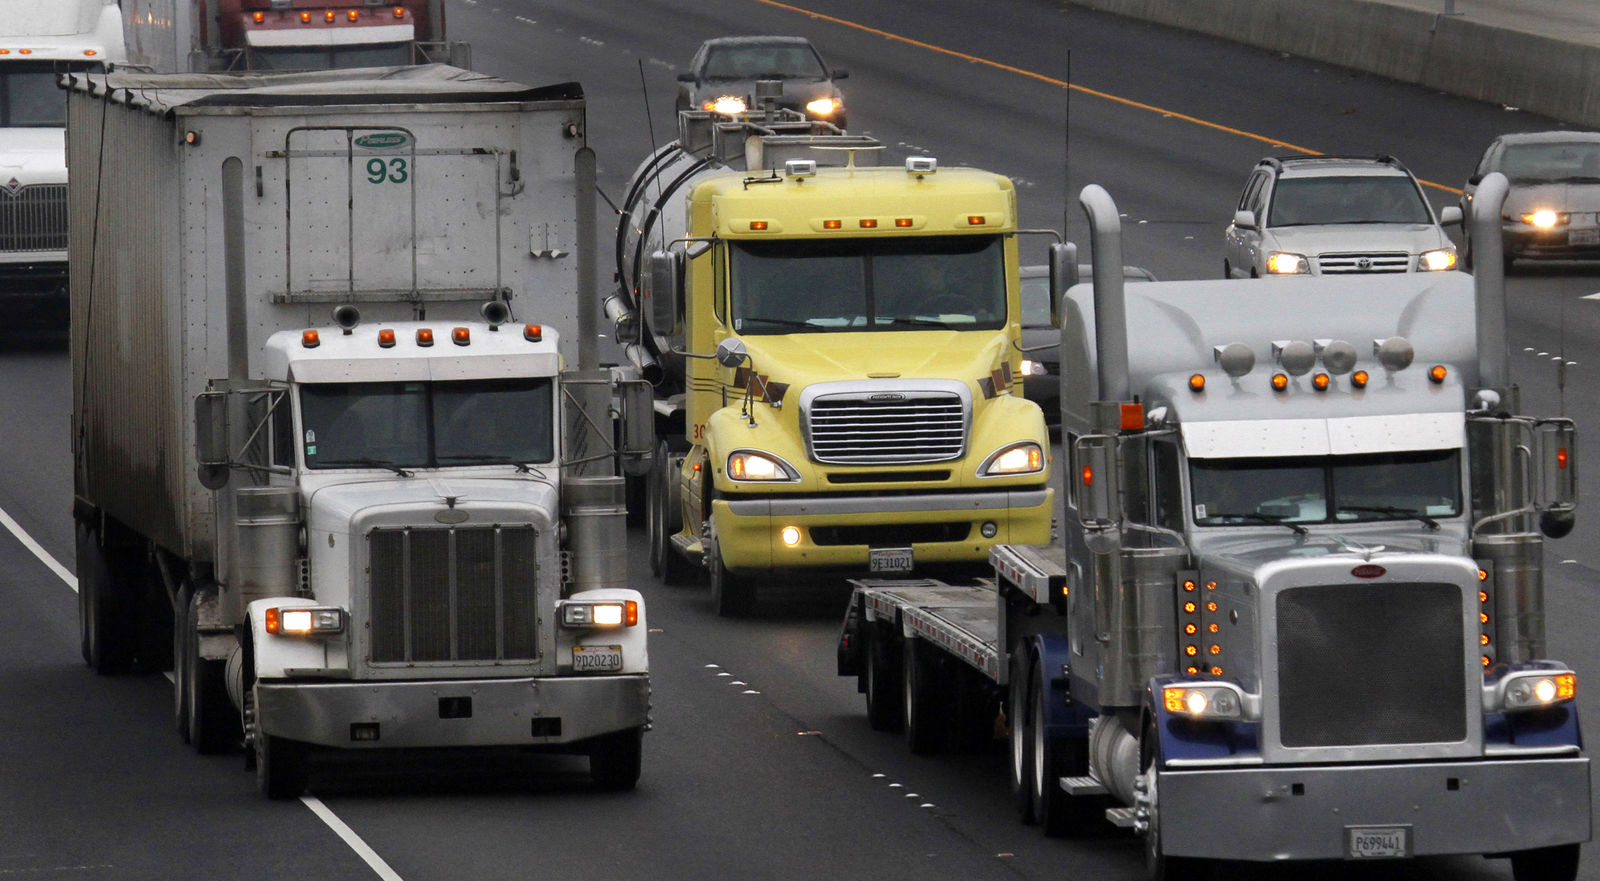 FILE - In this Dec. 17, 2010 file photo, trucks make their way in Livermore, Calif. A new study released Monday, March 11, 2019, says African-Americans and Hispanics breathe in far more deadly air pollution than they are responsible for making.   (AP Photo/Ben Margot, File)